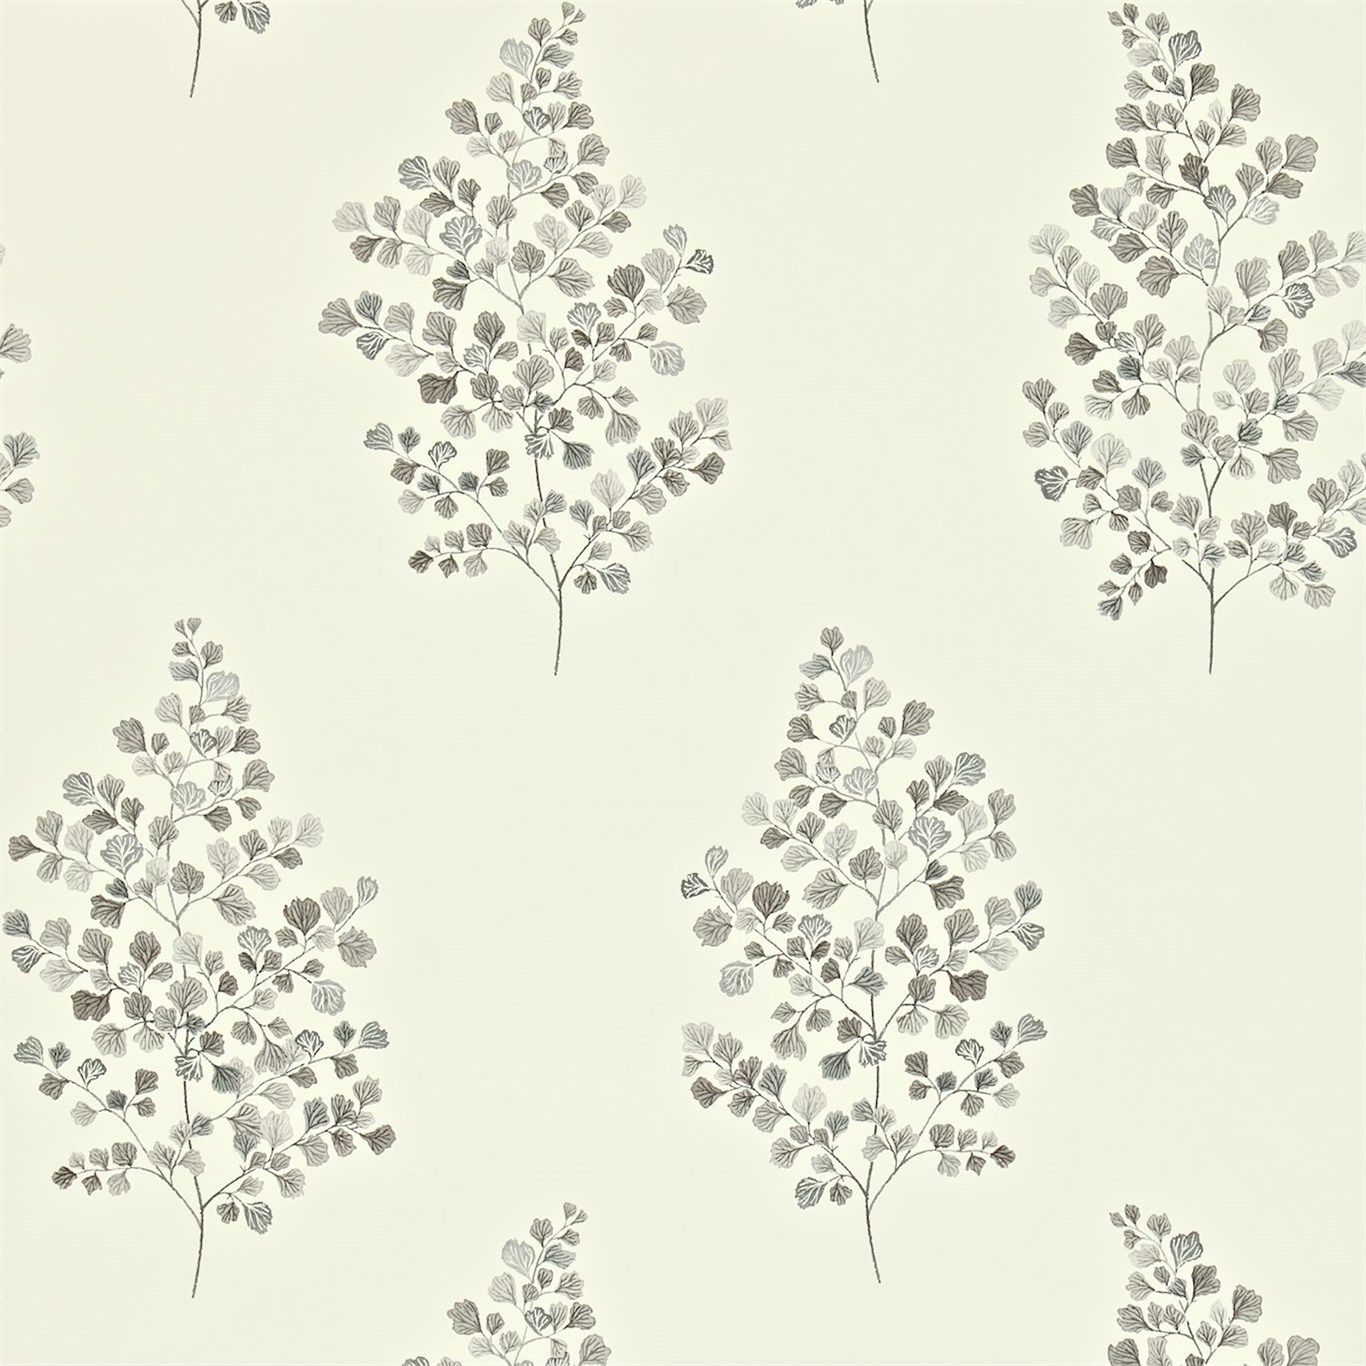 Sanderson - Traditional to contemporary, high quality designer fabrics and wallpapers | Products | British/UK Fabric and Wallpapers | Angel Ferns (DMAY211997) | Maycott Wallpapers